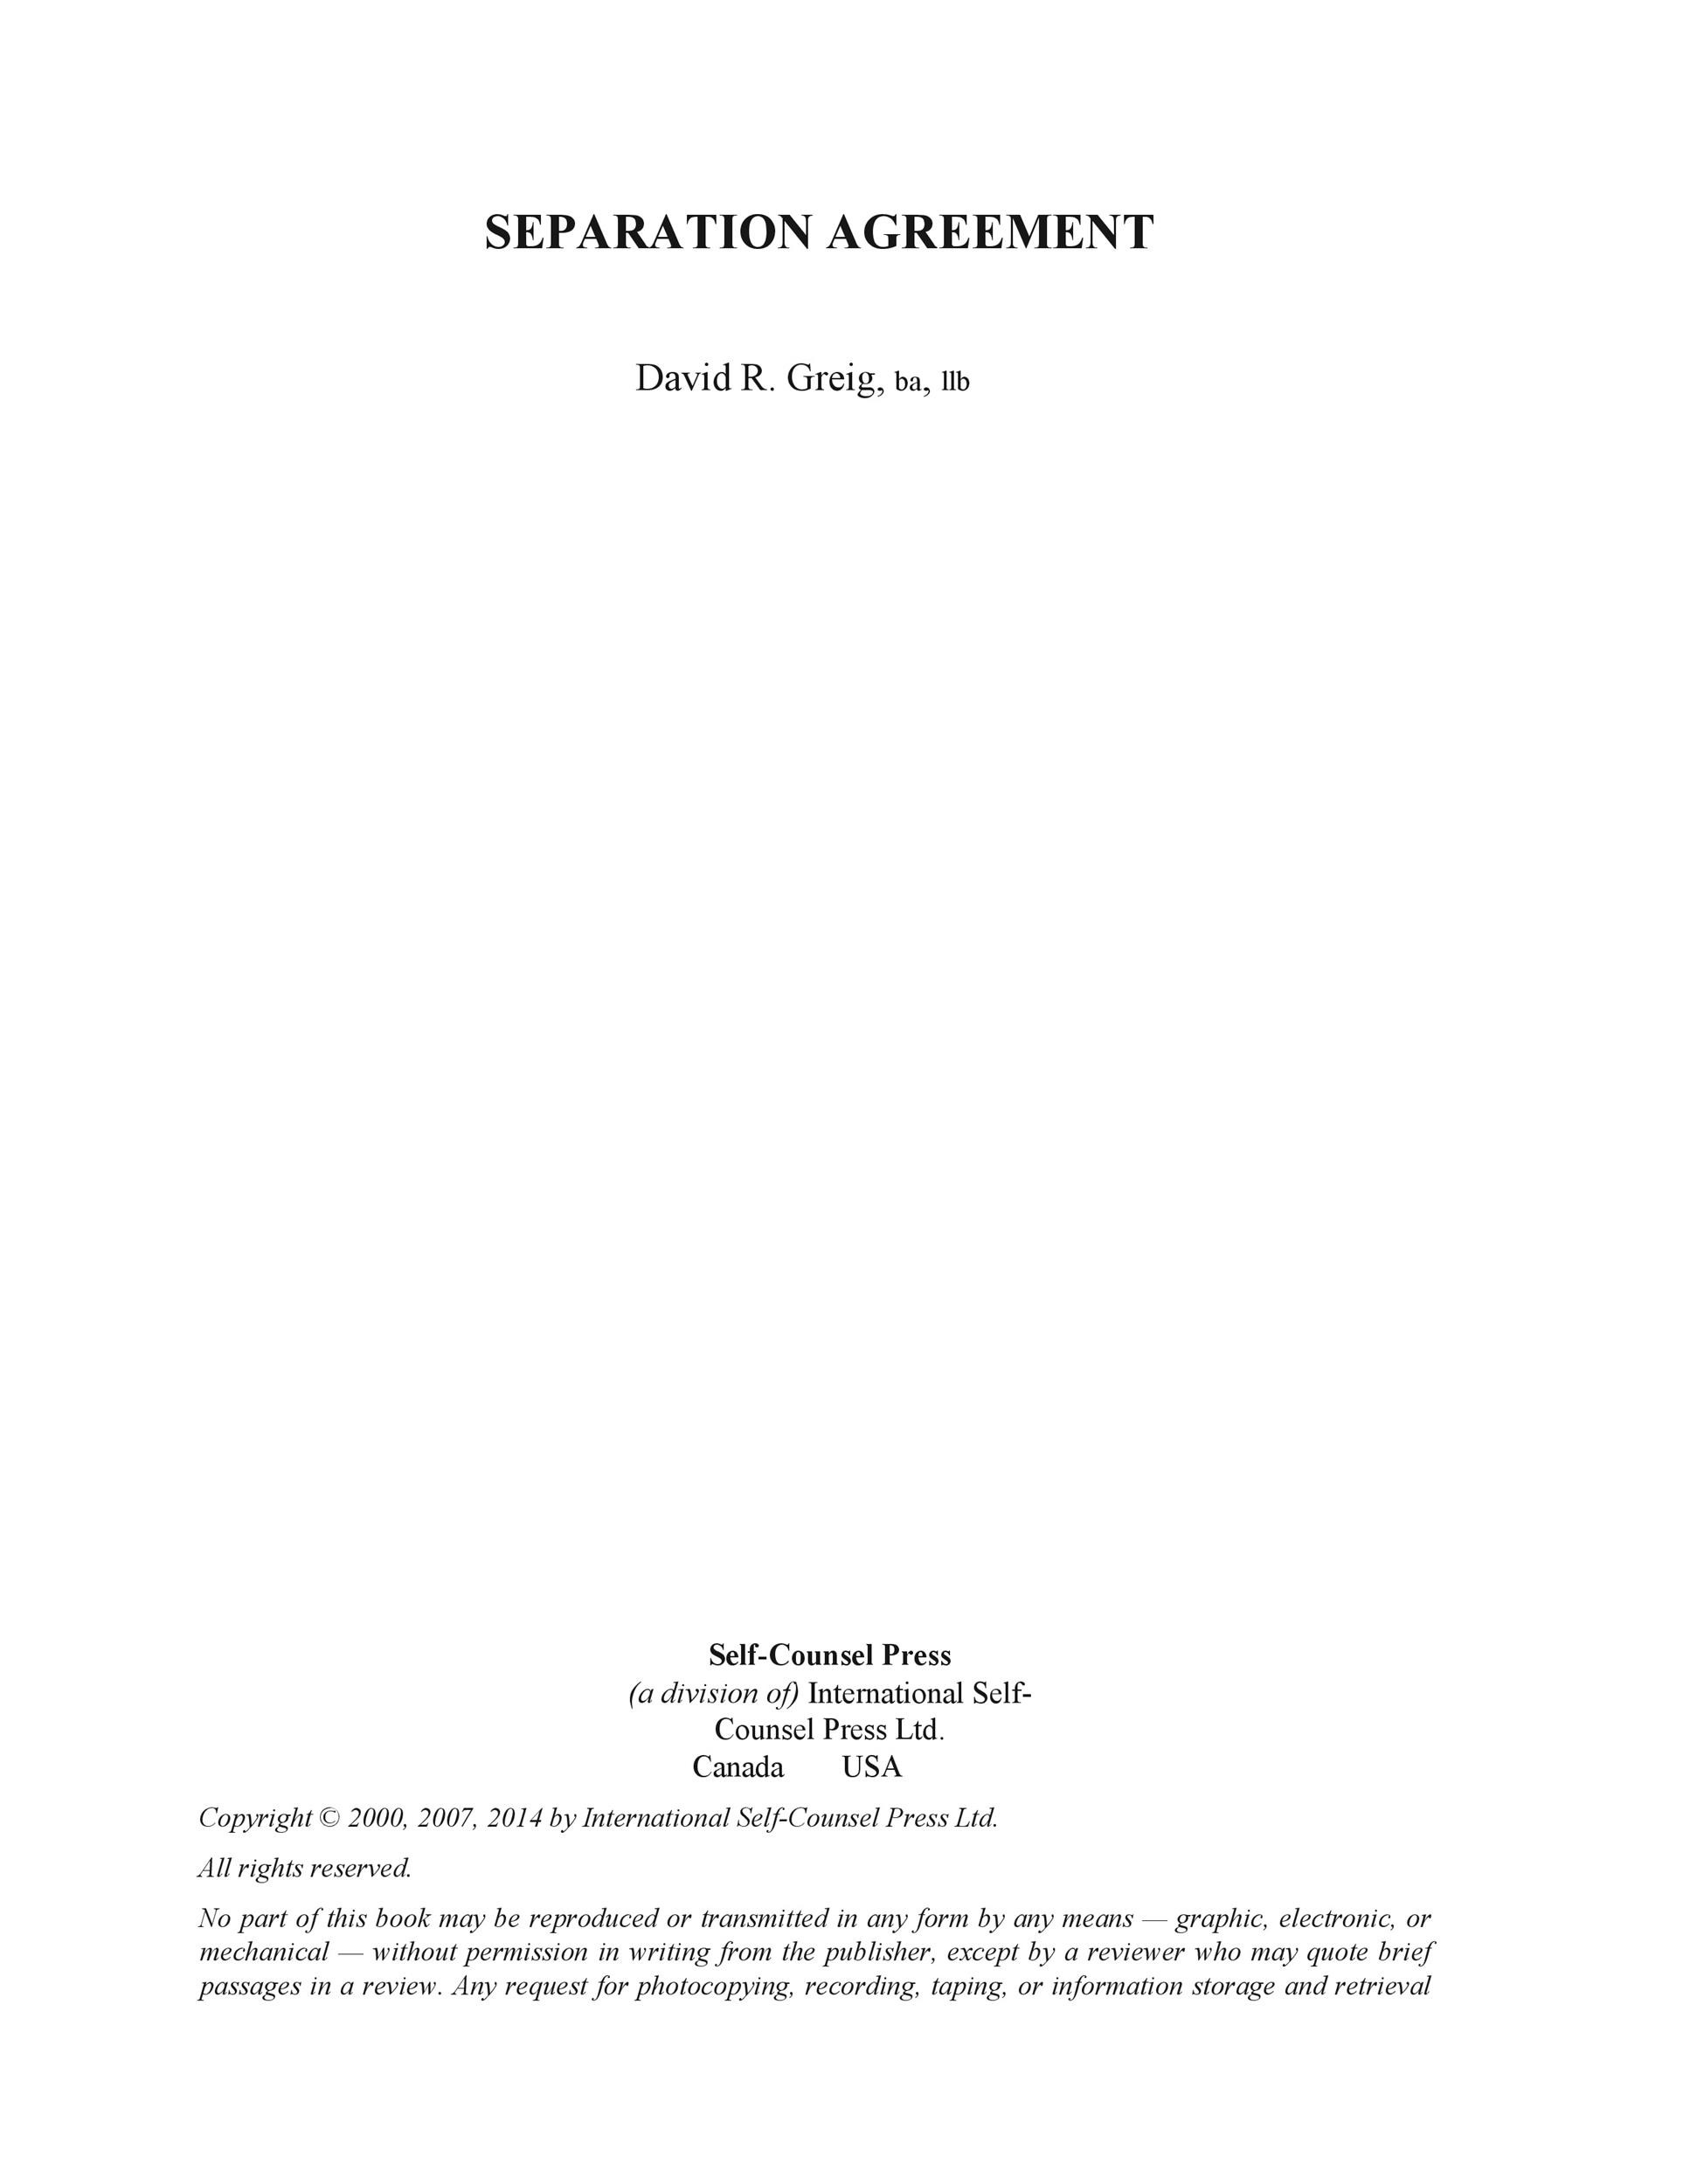 Free Separation Agreement Template 33